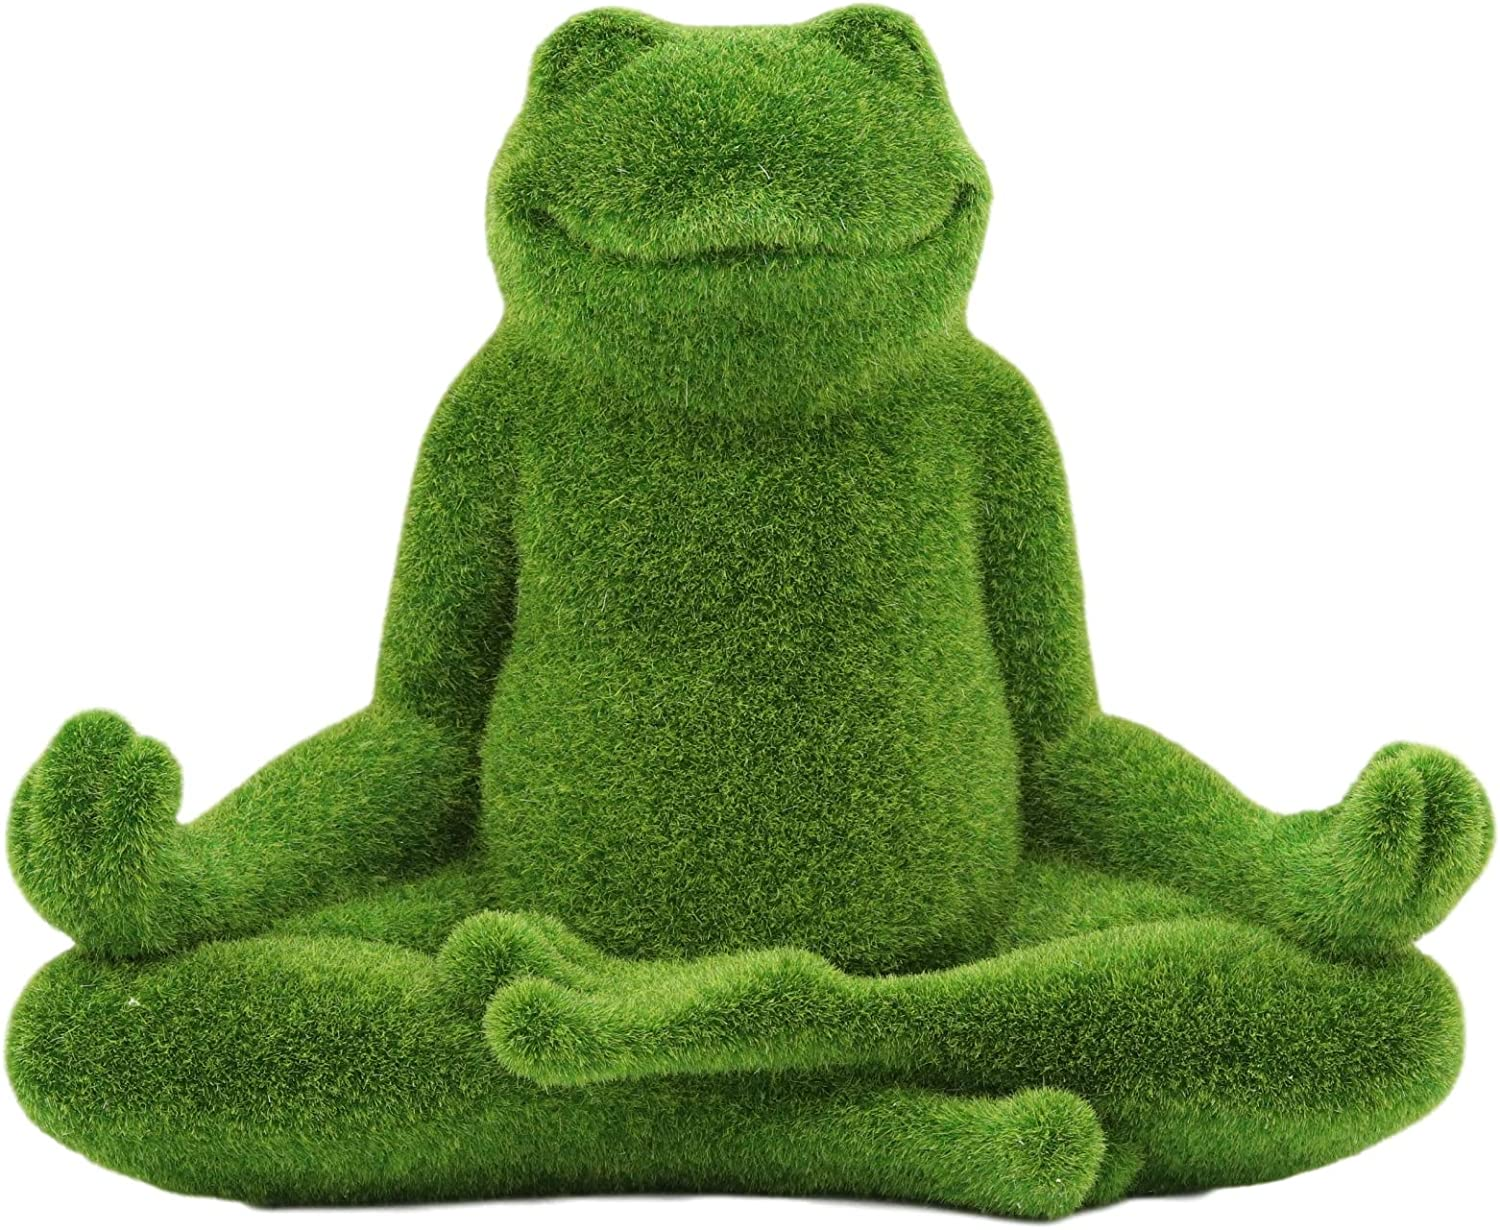 Ebros Whimsical Meditating Yoga Frog Lotus Pose Garden Statue in Flocked Artificial Moss Finish Resin Sculpture Guest Greeter Home Decor Outdoors Patio Flower Bed Frogs Toads Zen Feng Shui Sculpture